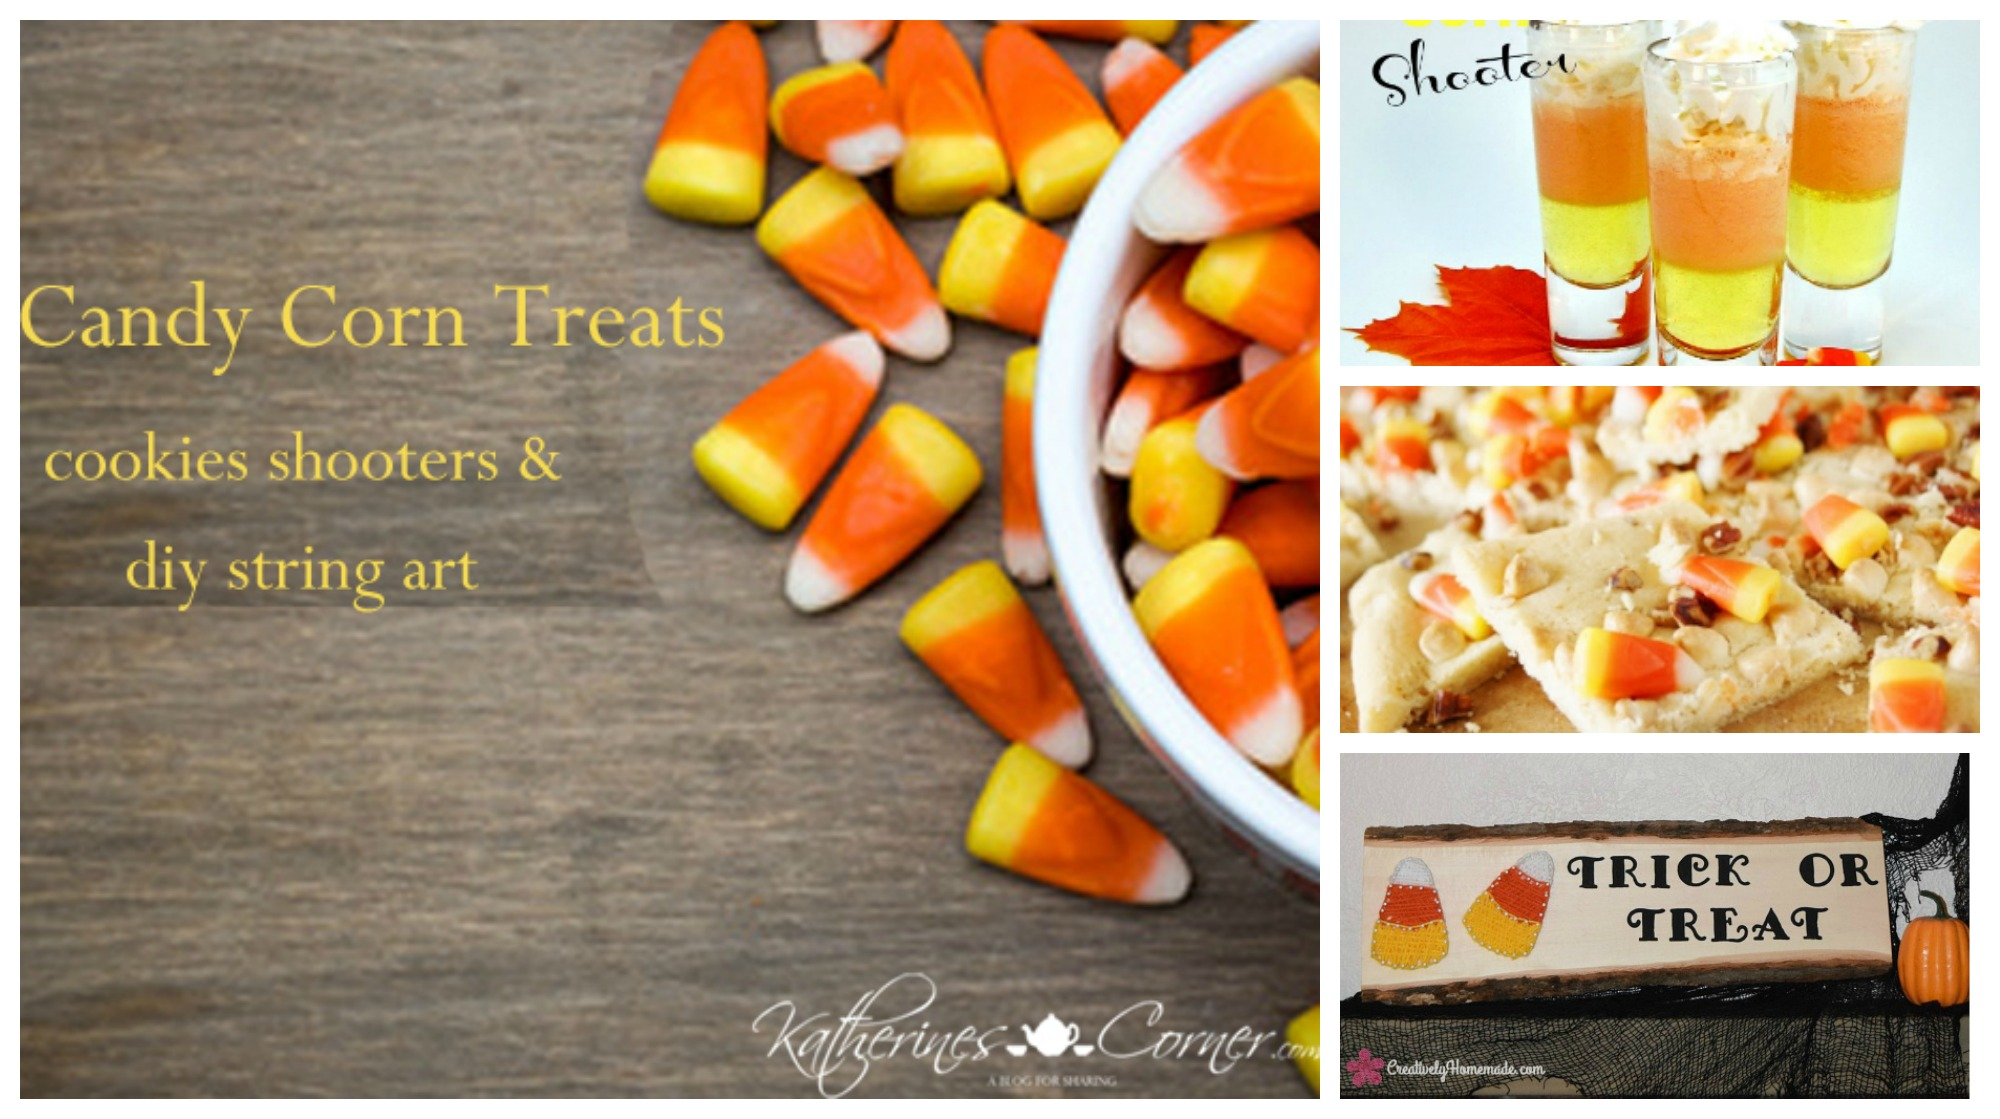 Candy Corn Treats Thursday Favorite Things Link Party